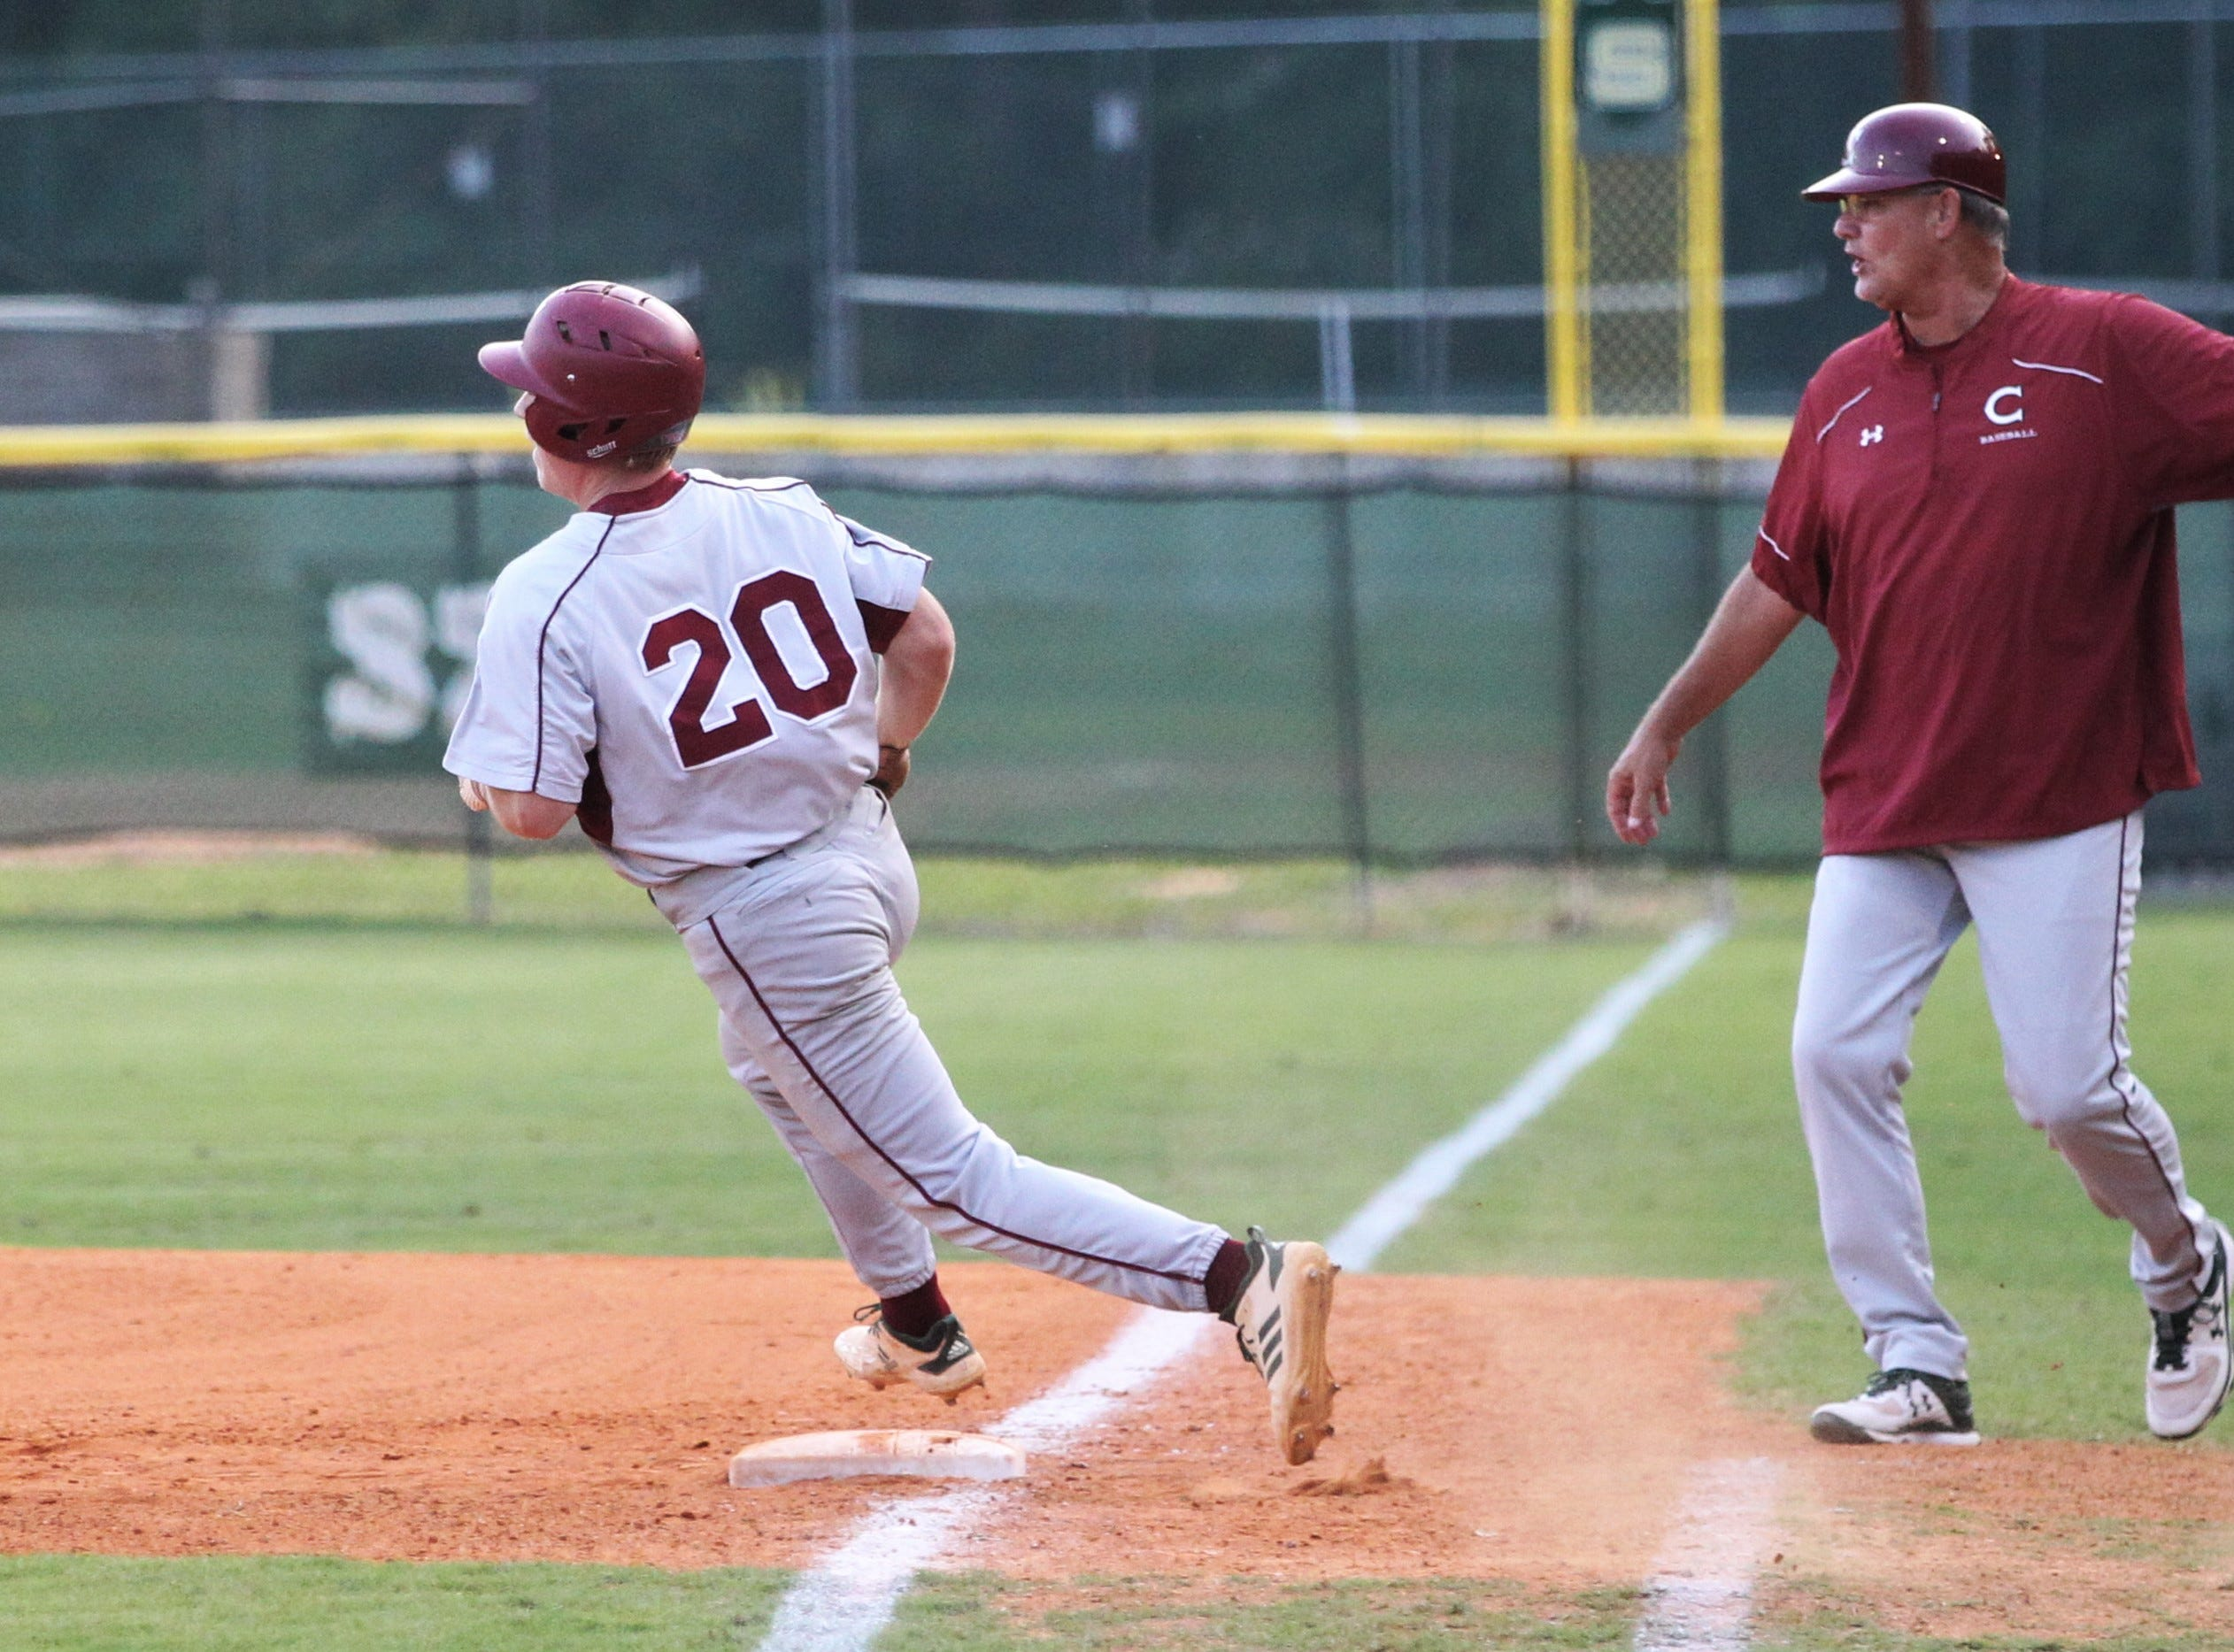 Chiles senior Mason Sanford rounds first during a double as Lincoln baseball beat Chiles 5-4  in 10 innings during a District 2-8A championship game on Thursday, May 9, 2019.